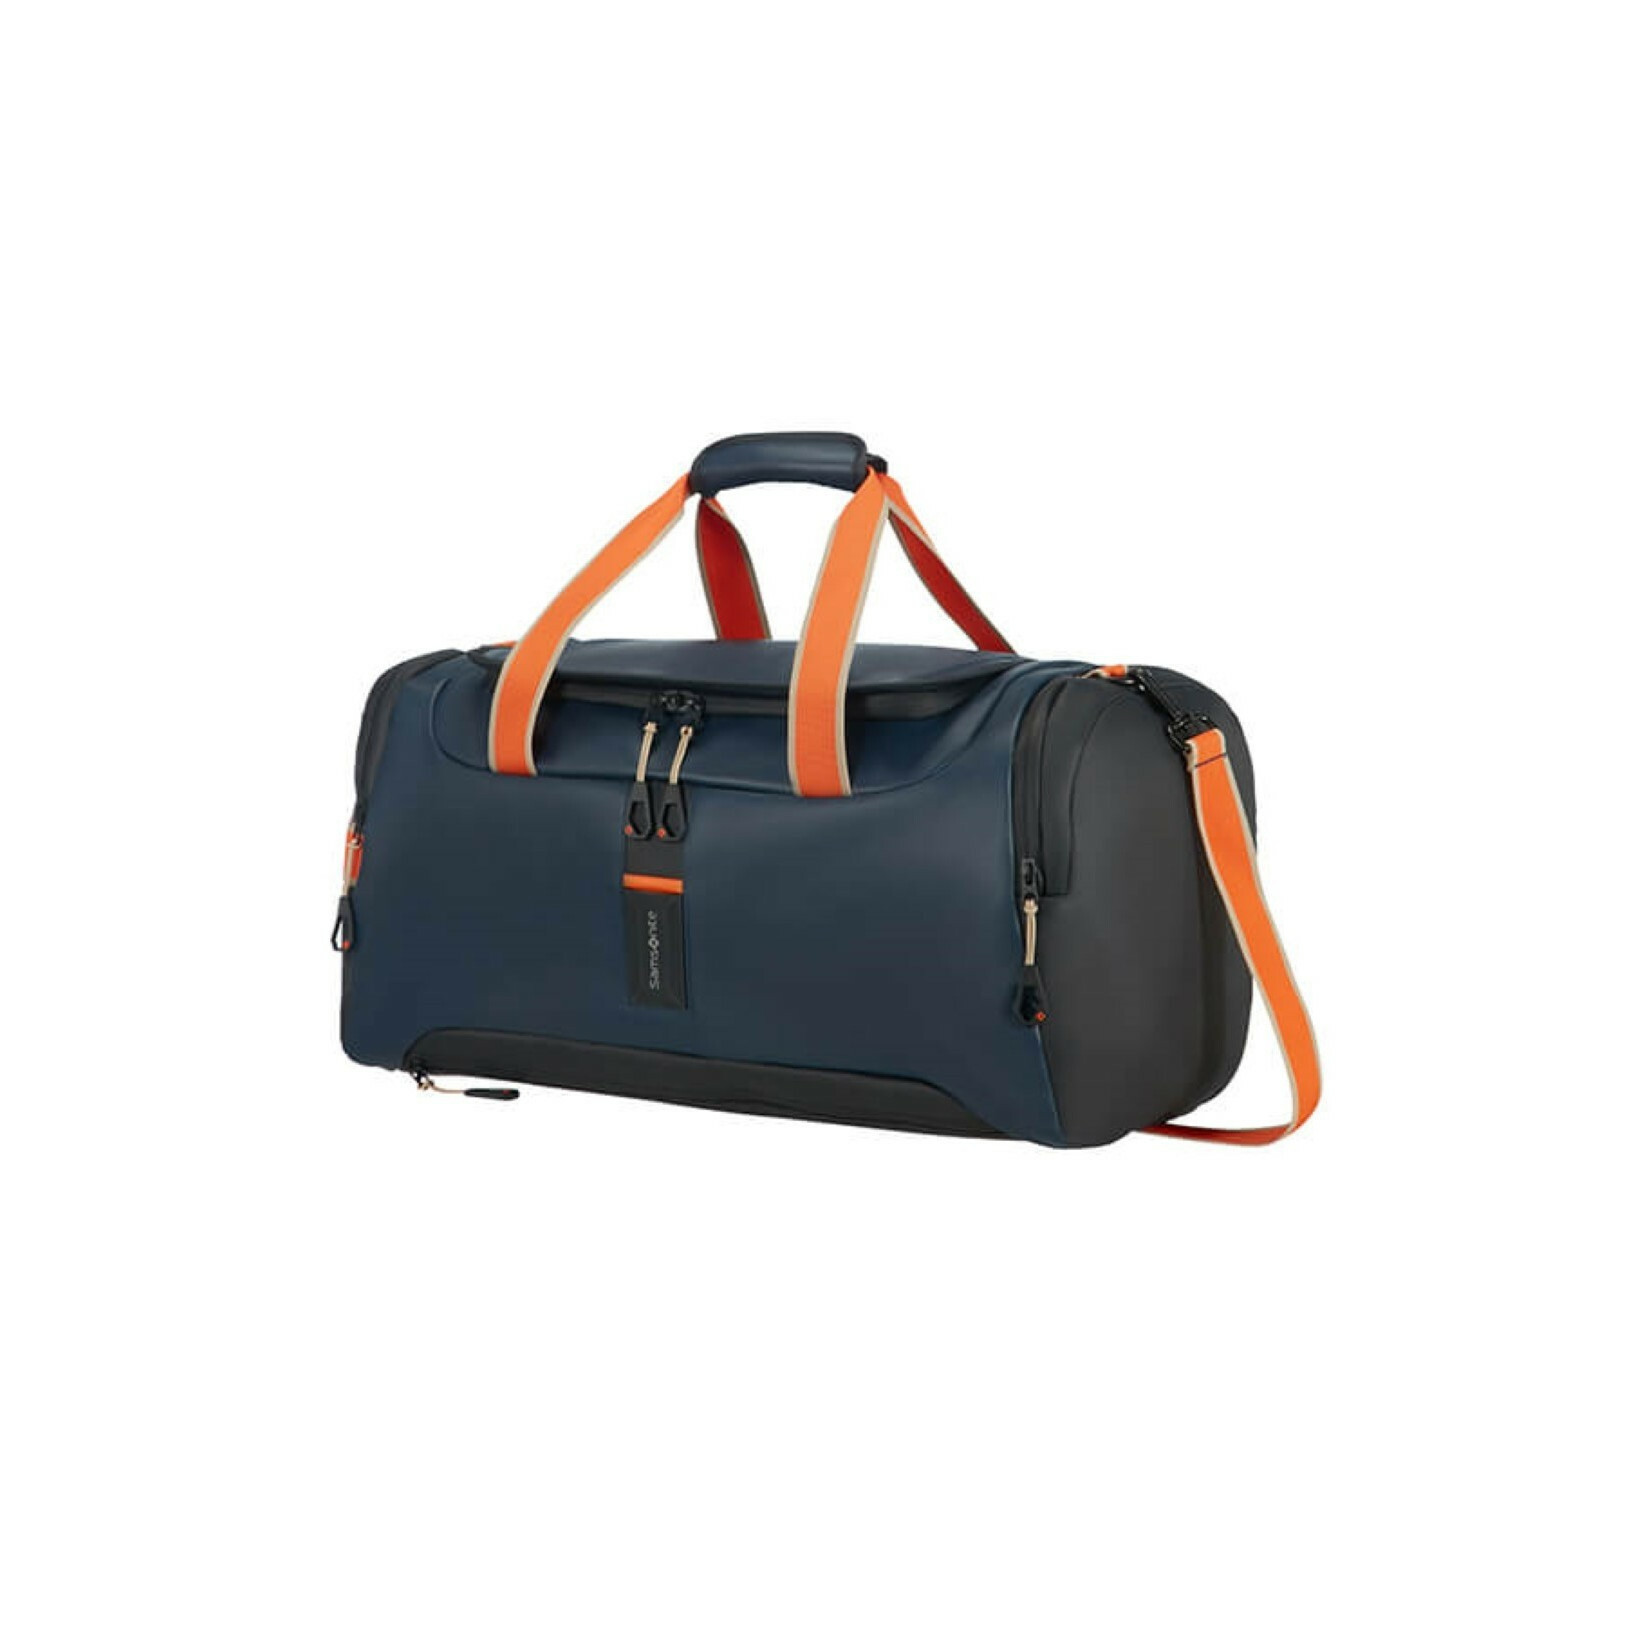 7944eec7676 Samsonite PARADIVER LIGHT DUFFLE 51, 01N-005 in de kleur 11 blue nights  5414847865107